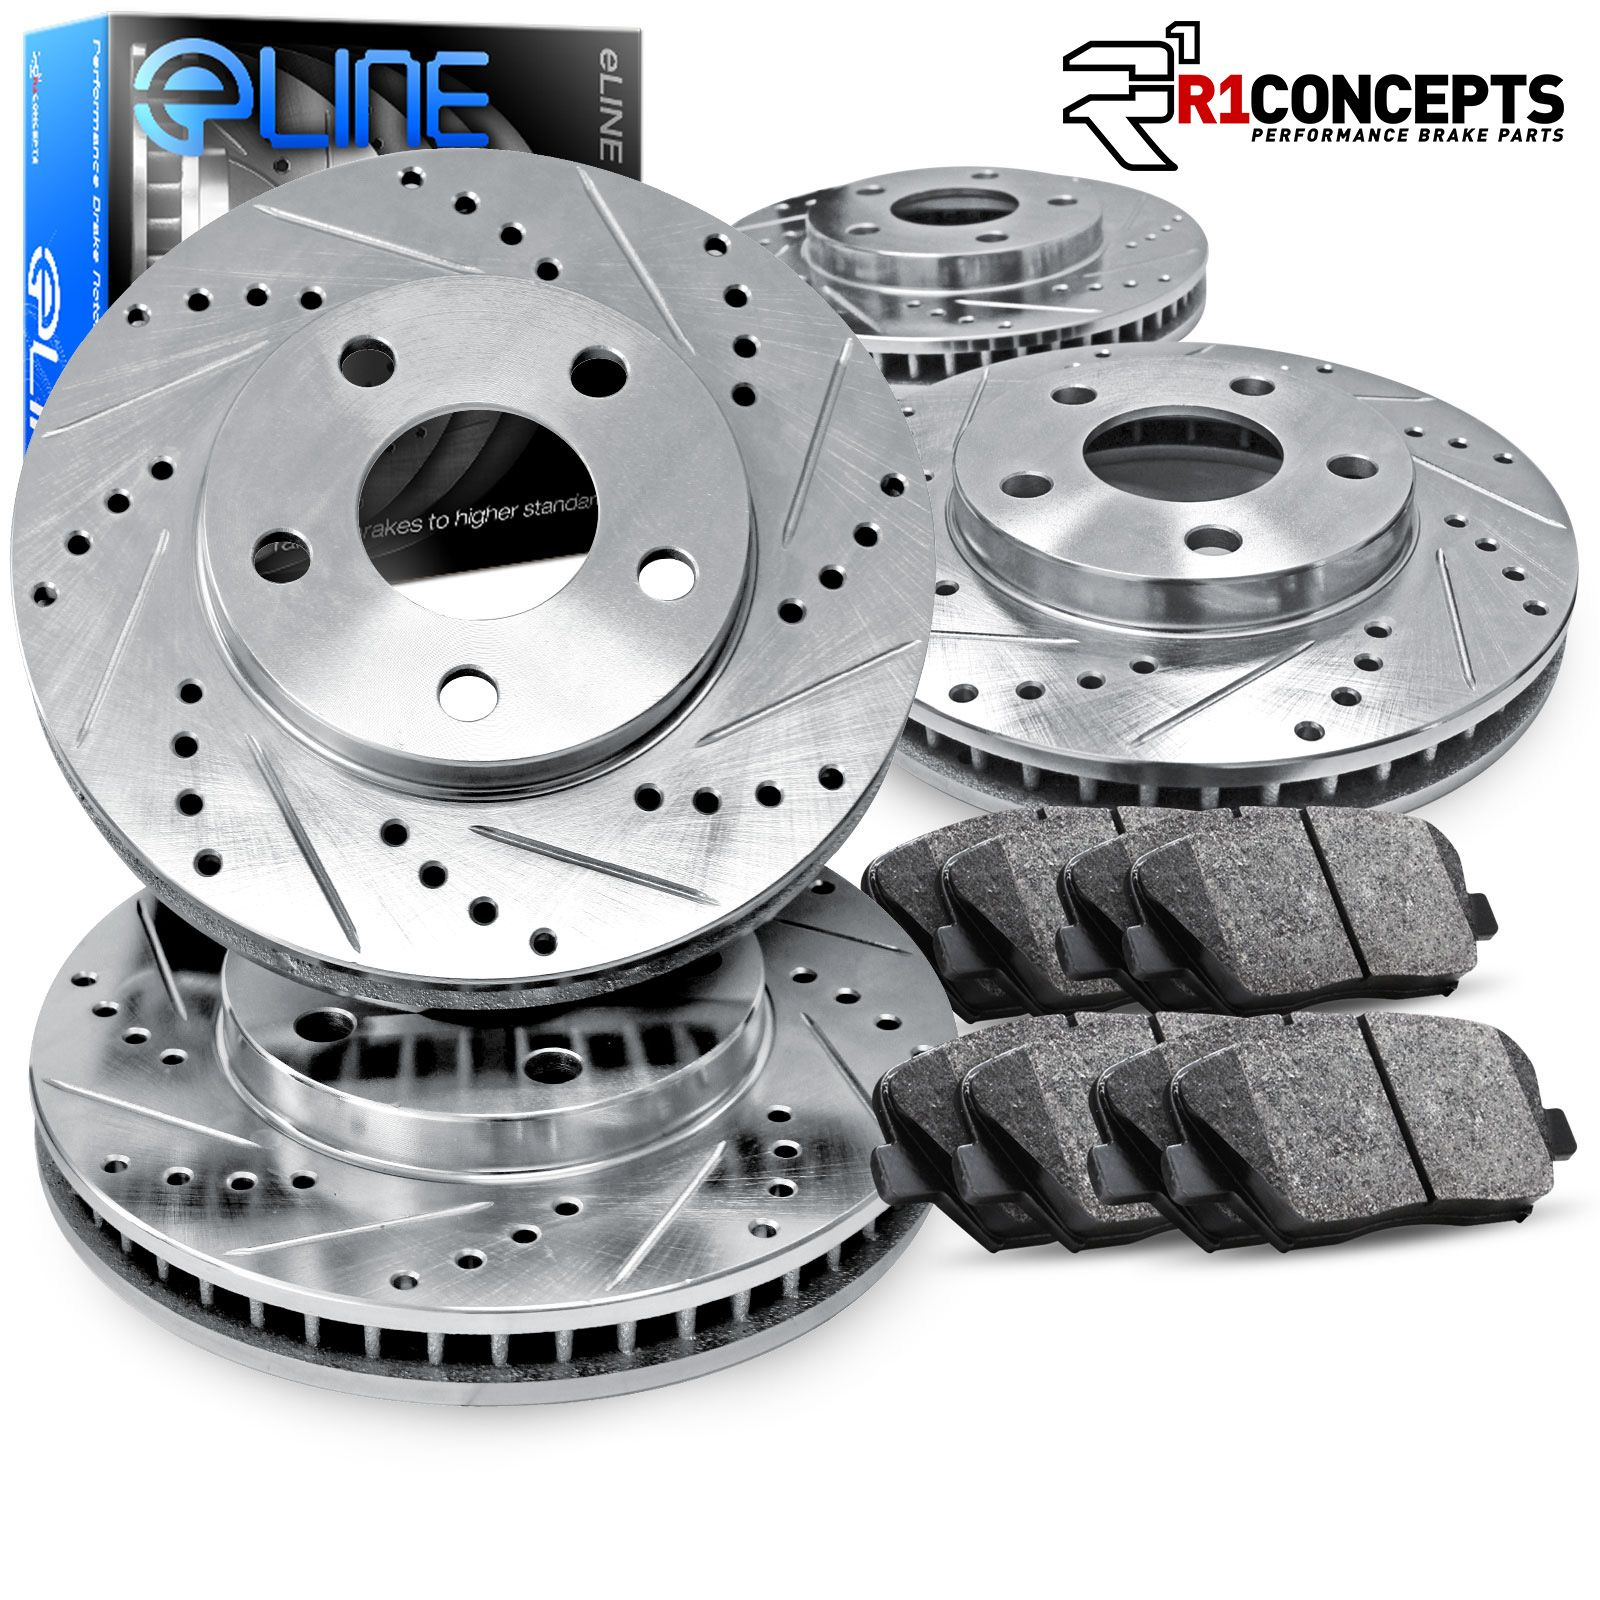 E-Coated Slotted Drilled Rotors + Ceramic Pads Fits: 2004 04 2005 05 Mazda RX-8 w//Sport Susp. Max Brakes Front /& Rear Elite Brake Kit KT006783